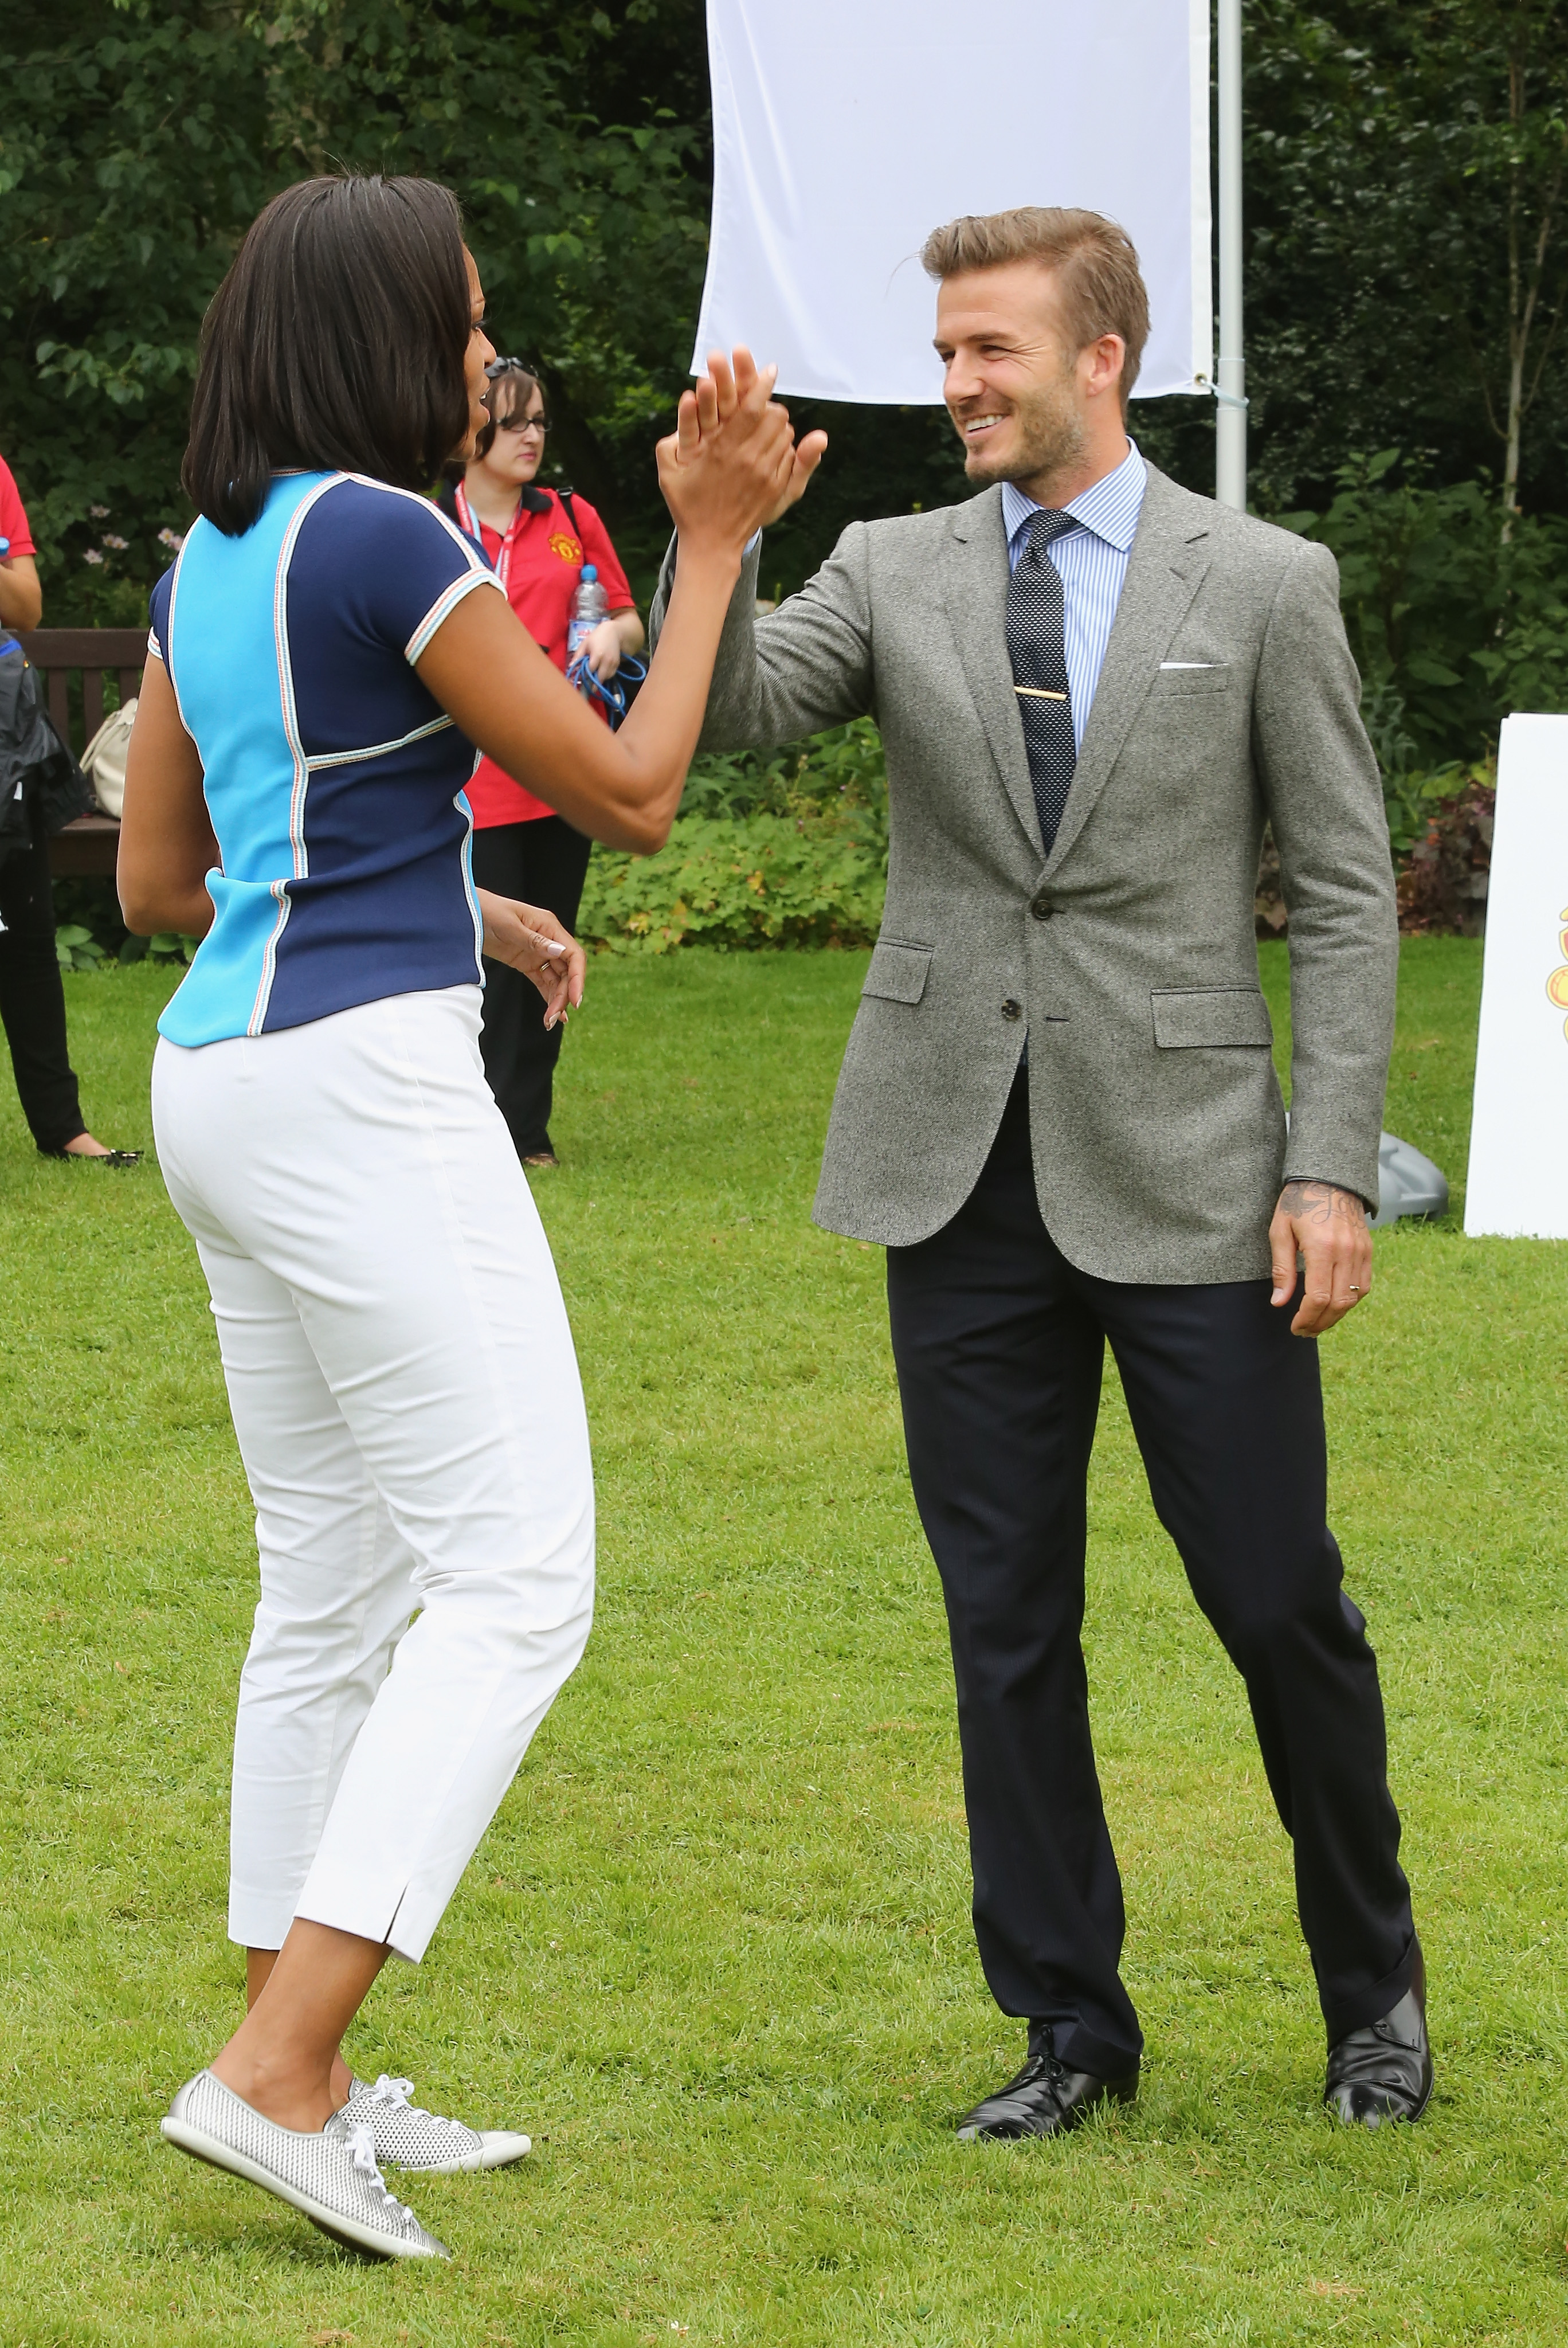 David Beckham and Michelle Obama shared a mid-air slap in July 2012 during an event in London.